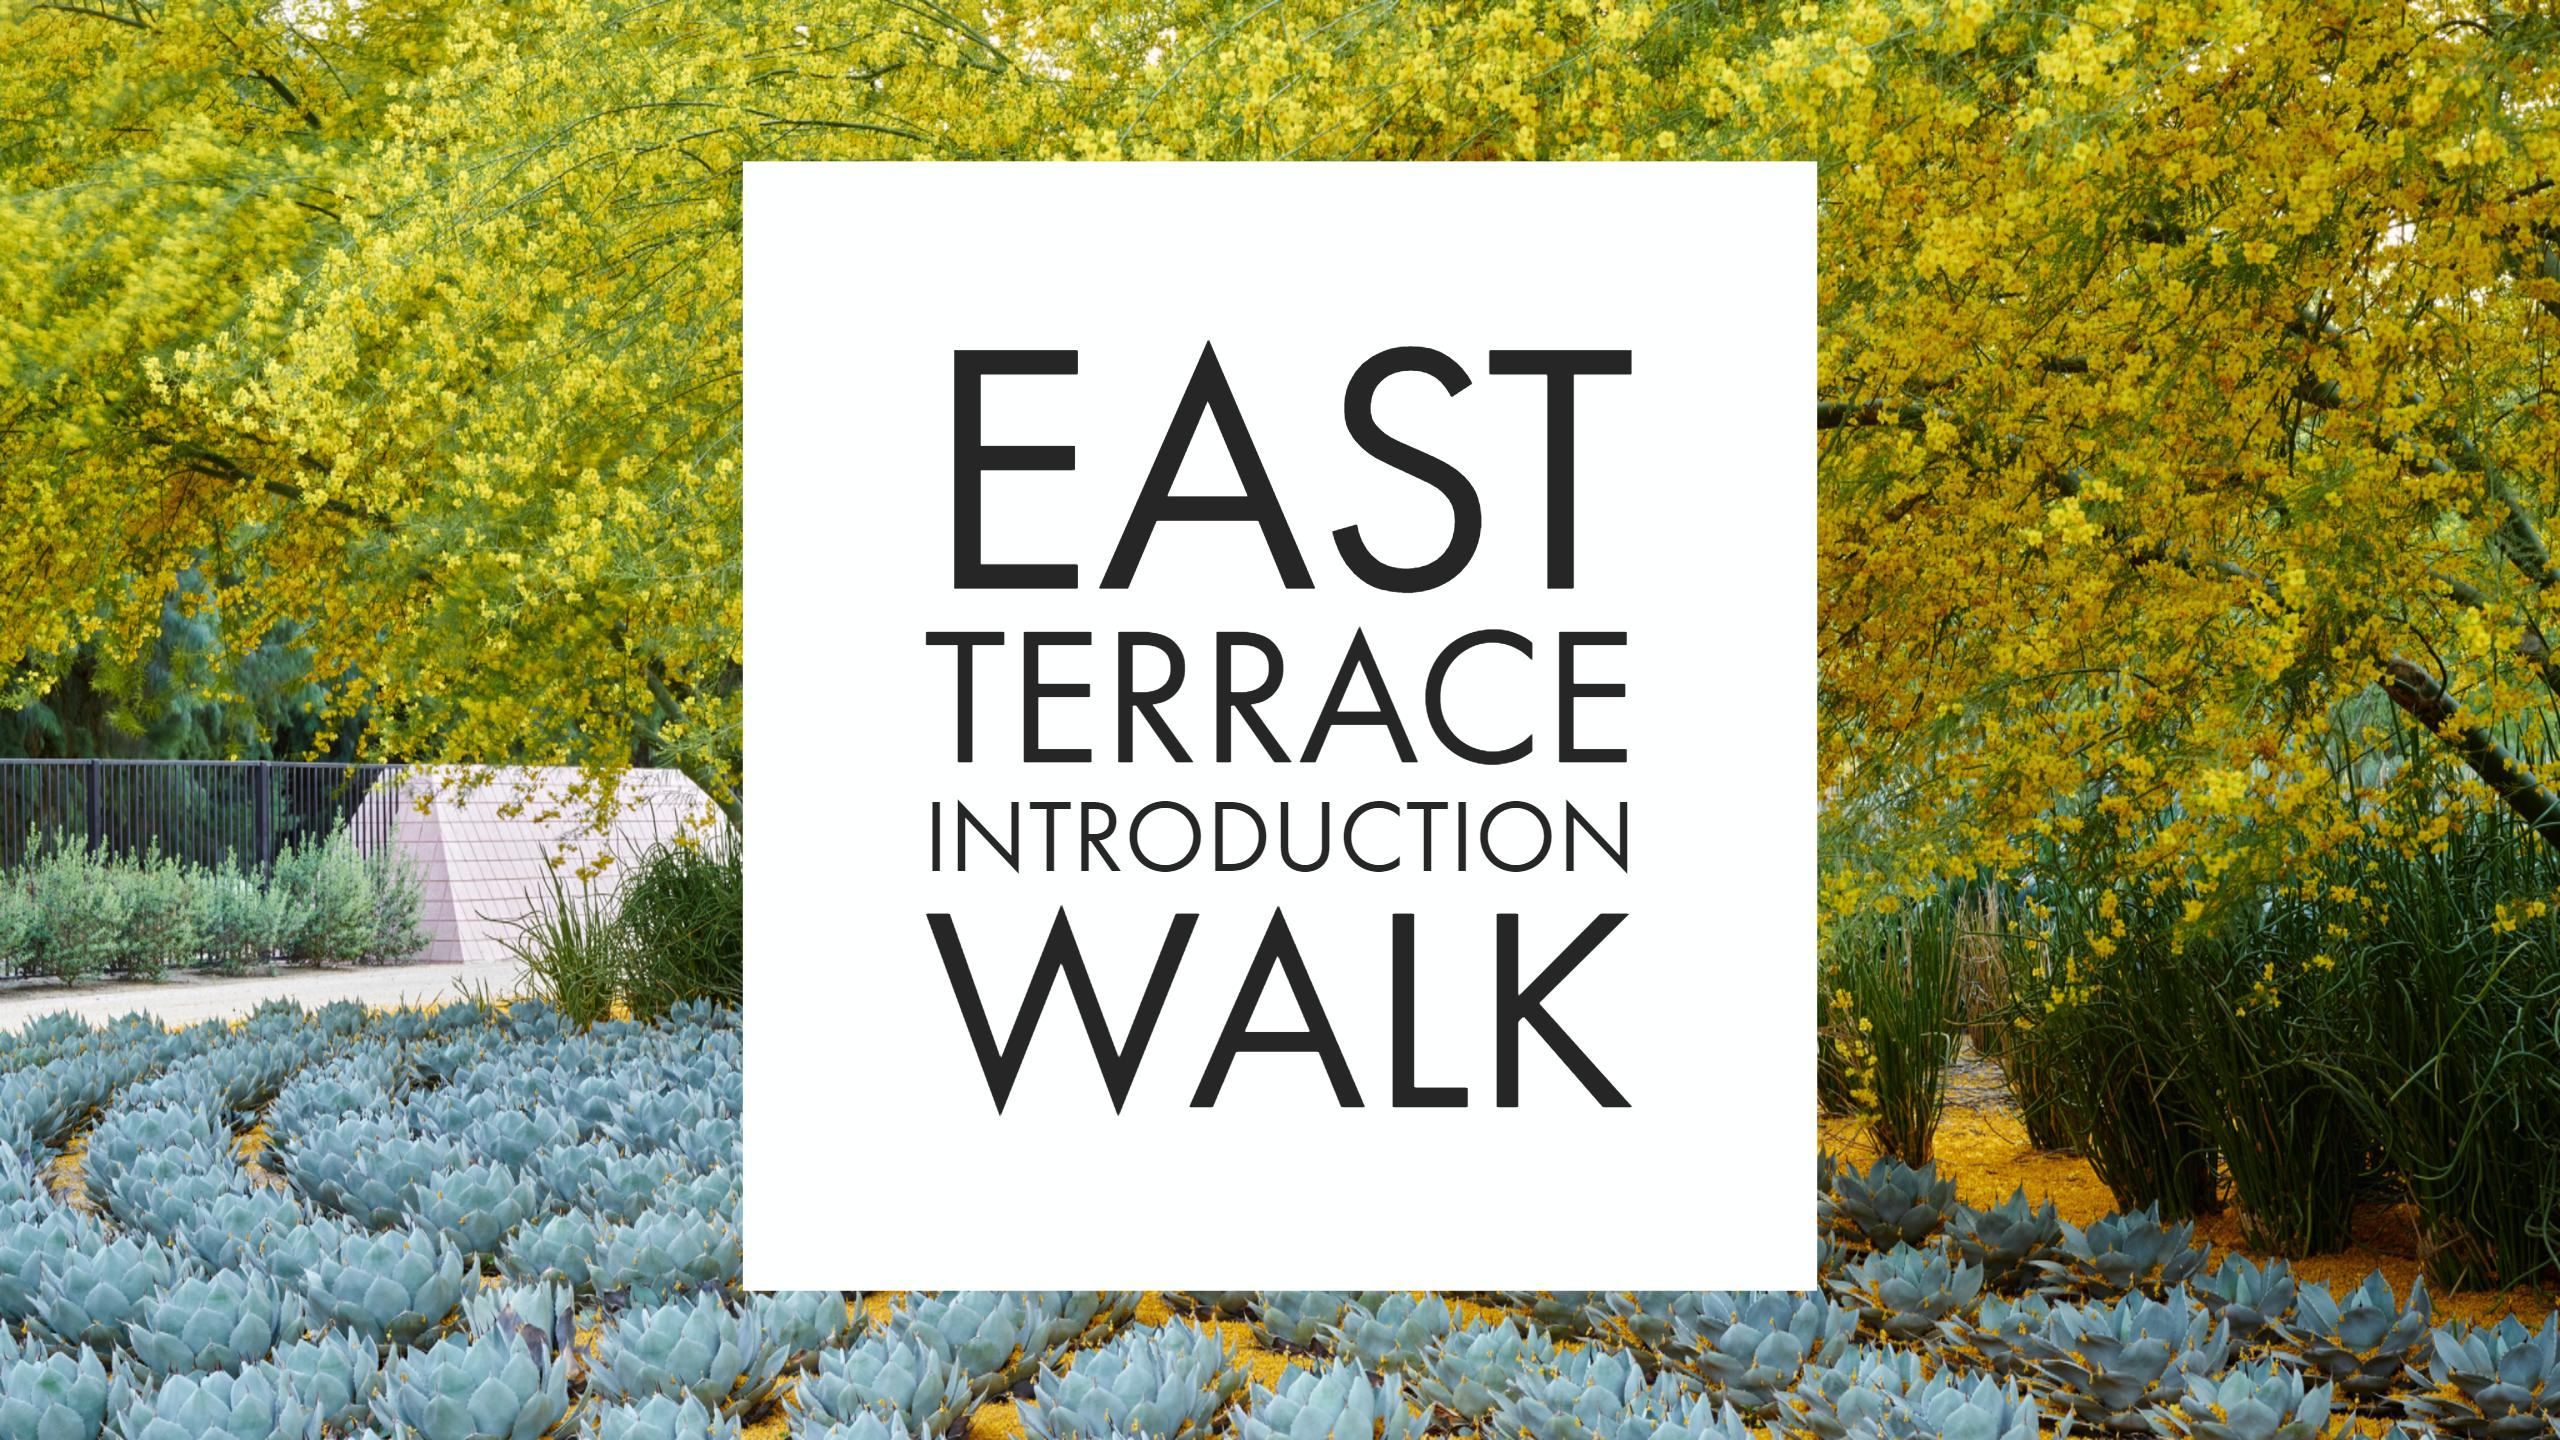 East Terrace Introduction Walk